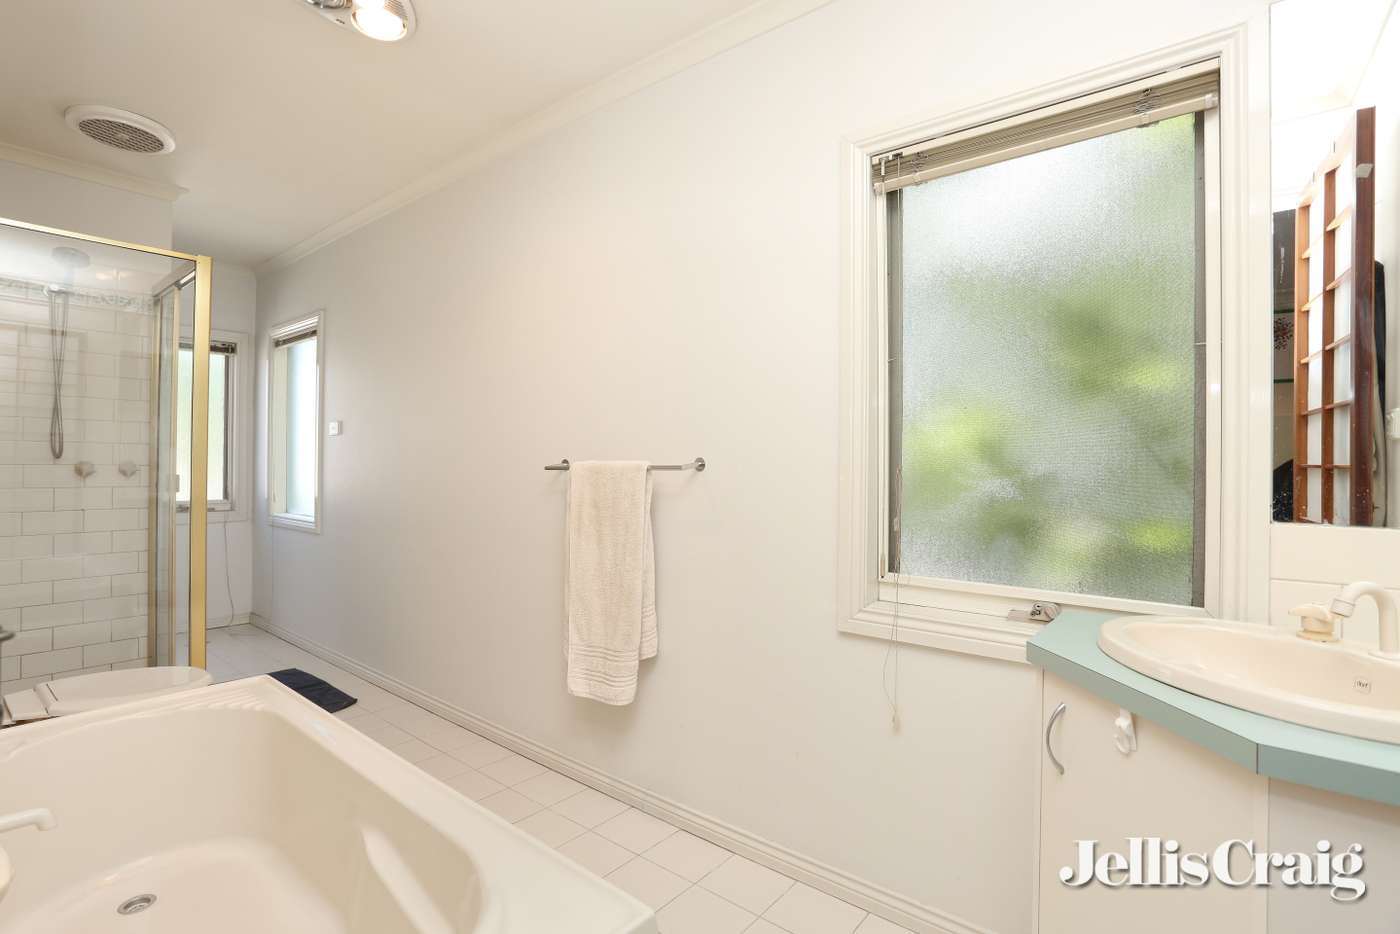 Seventh view of Homely house listing, 238 Abbotsford Street, North Melbourne VIC 3051